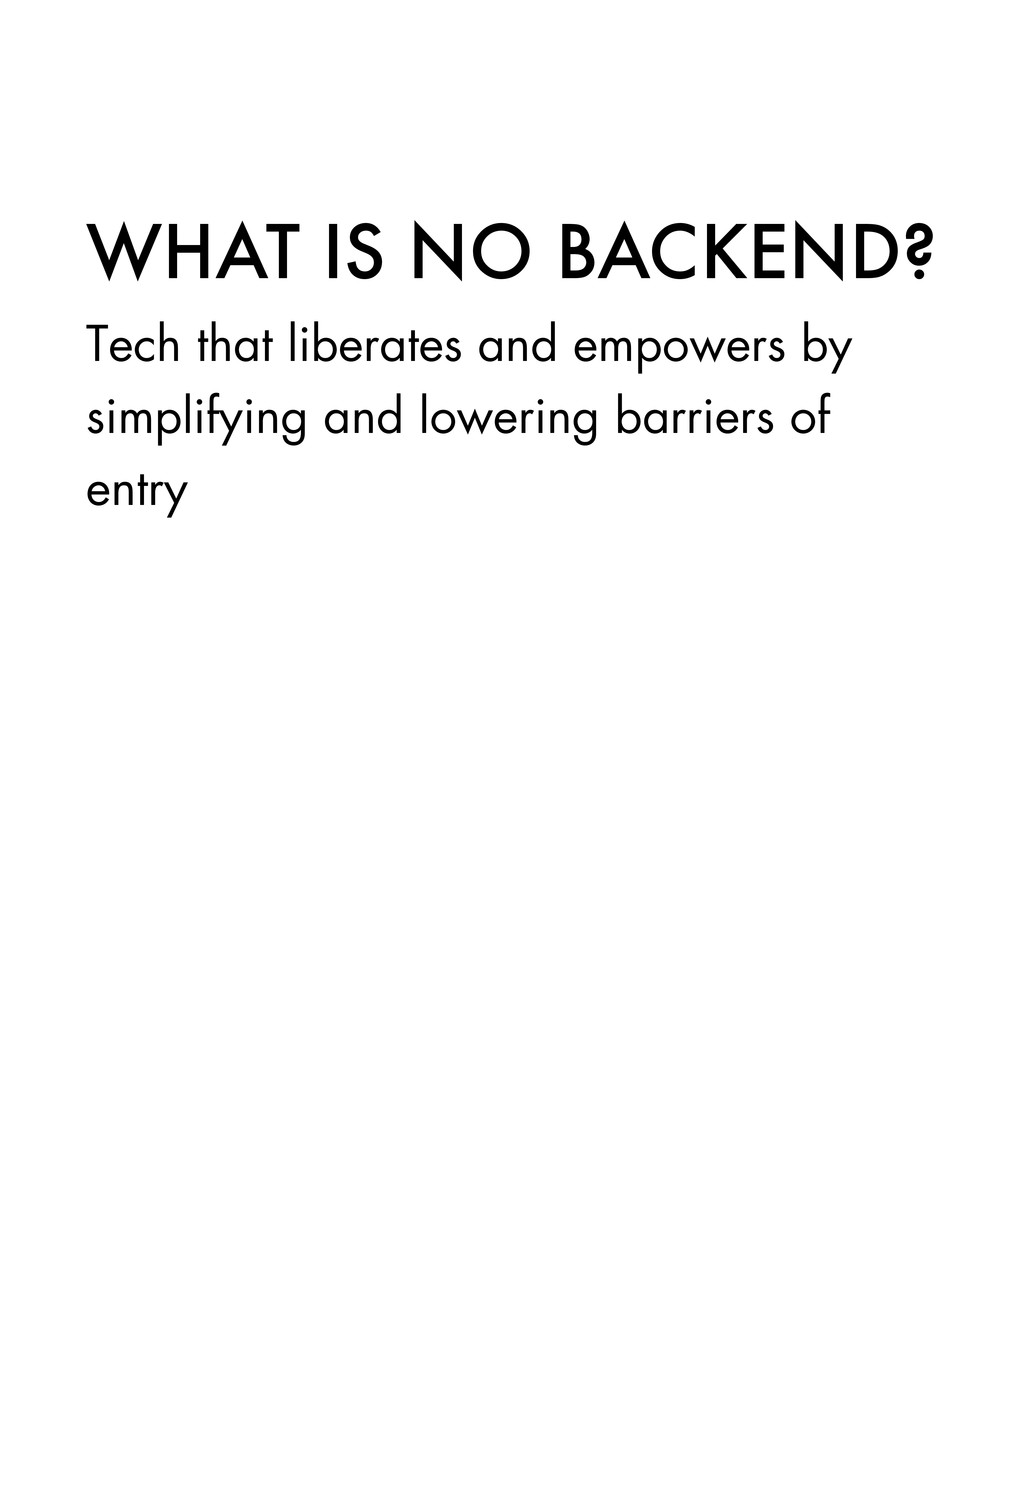 WHAT IS NO BACKEND? Tech that liberates and emp...